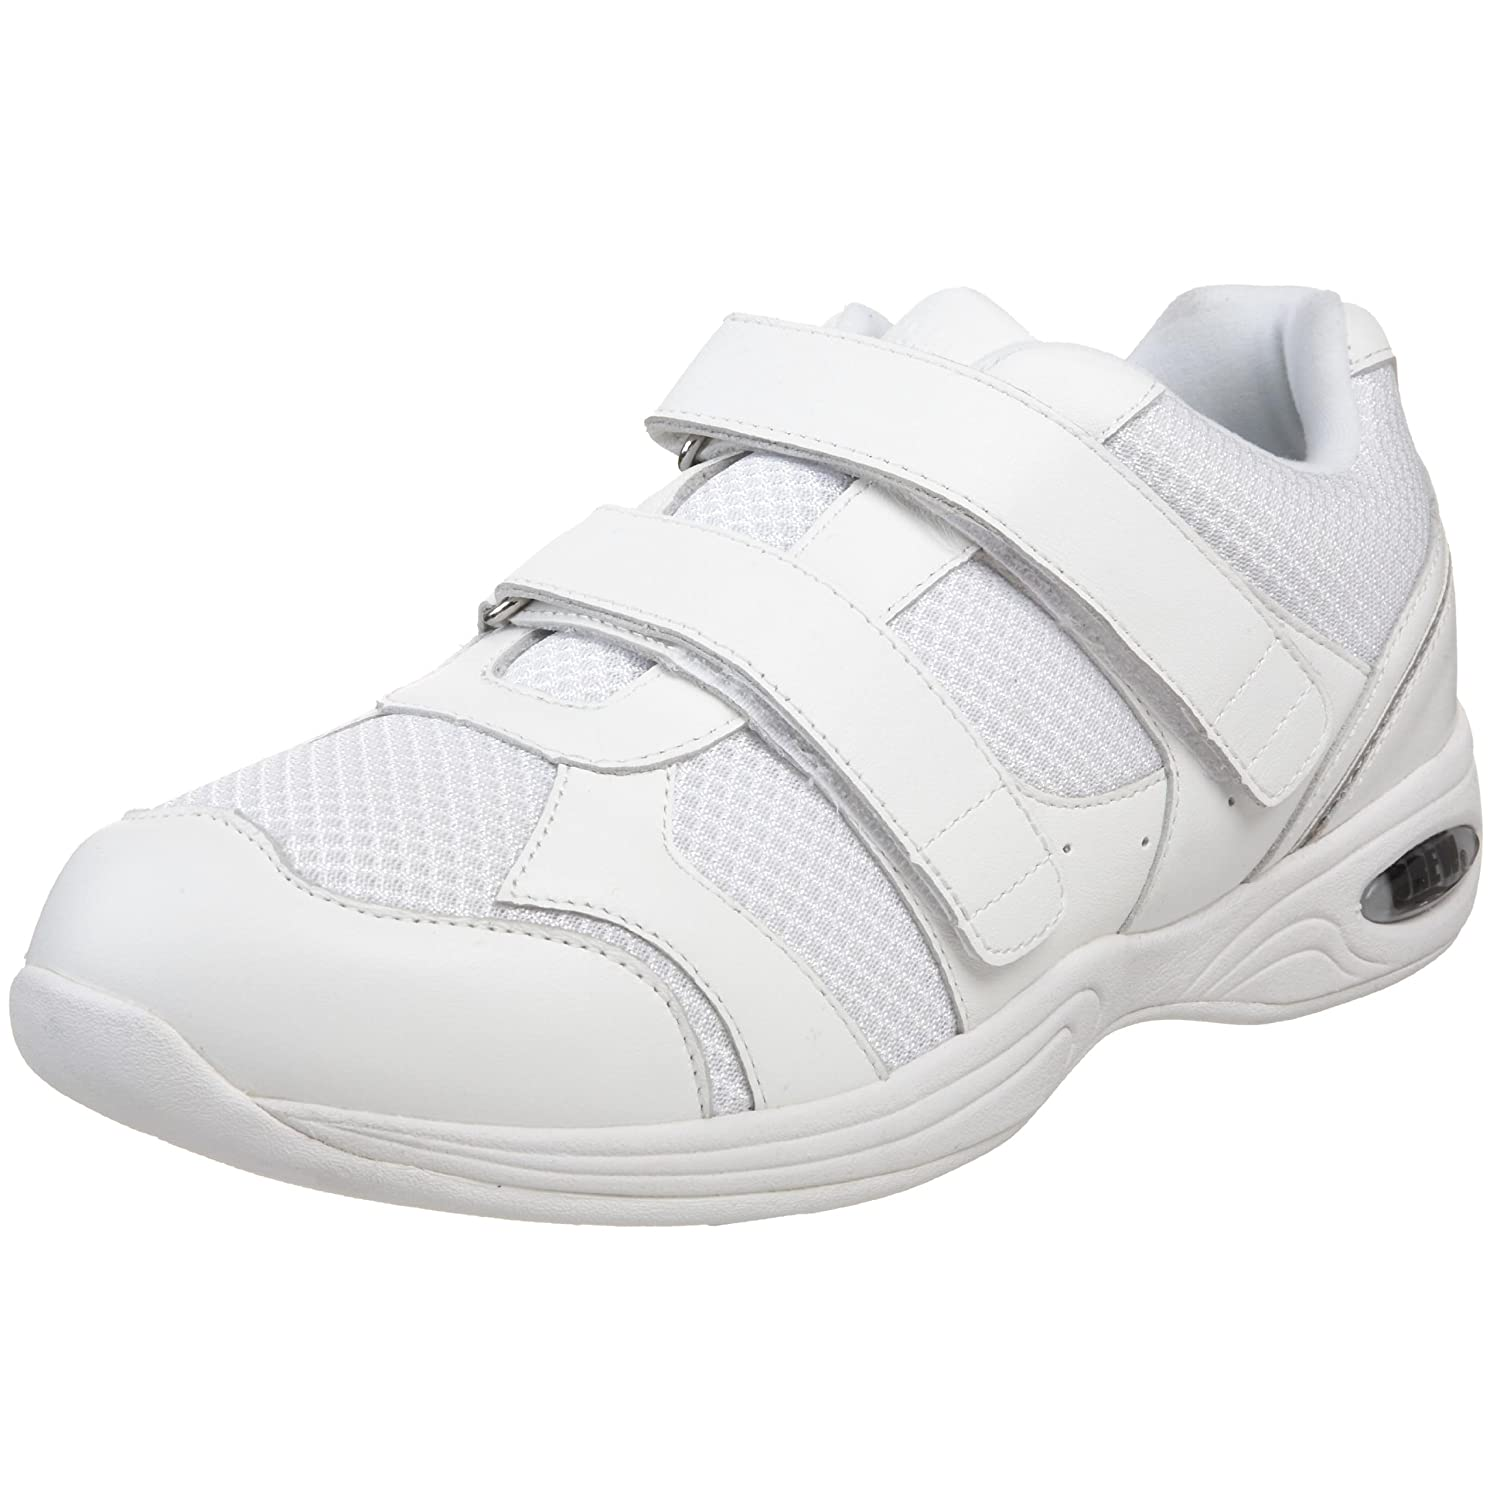 Drew Shoe Men's Apollo Athletic Shoe